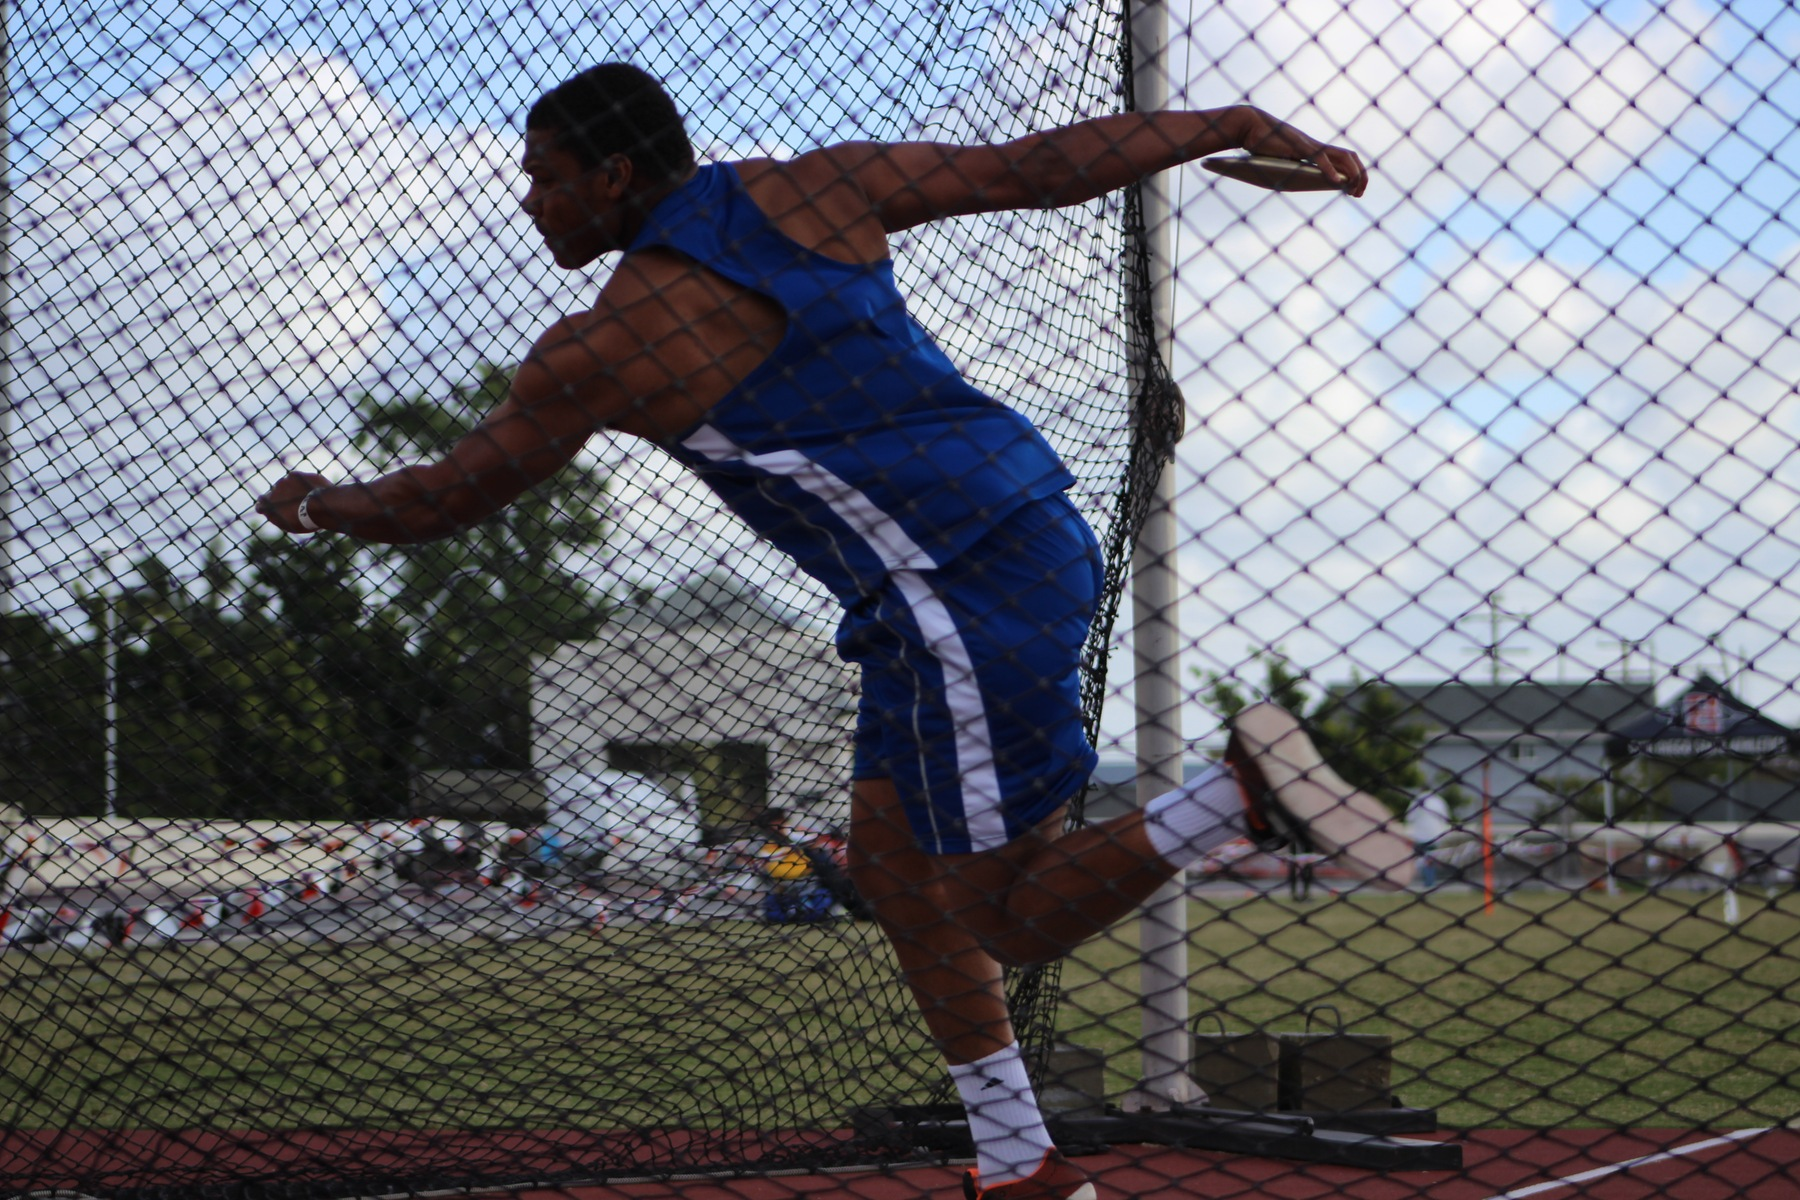 Kordell Hampton Breaks Discus School Record Again at Beach Invite